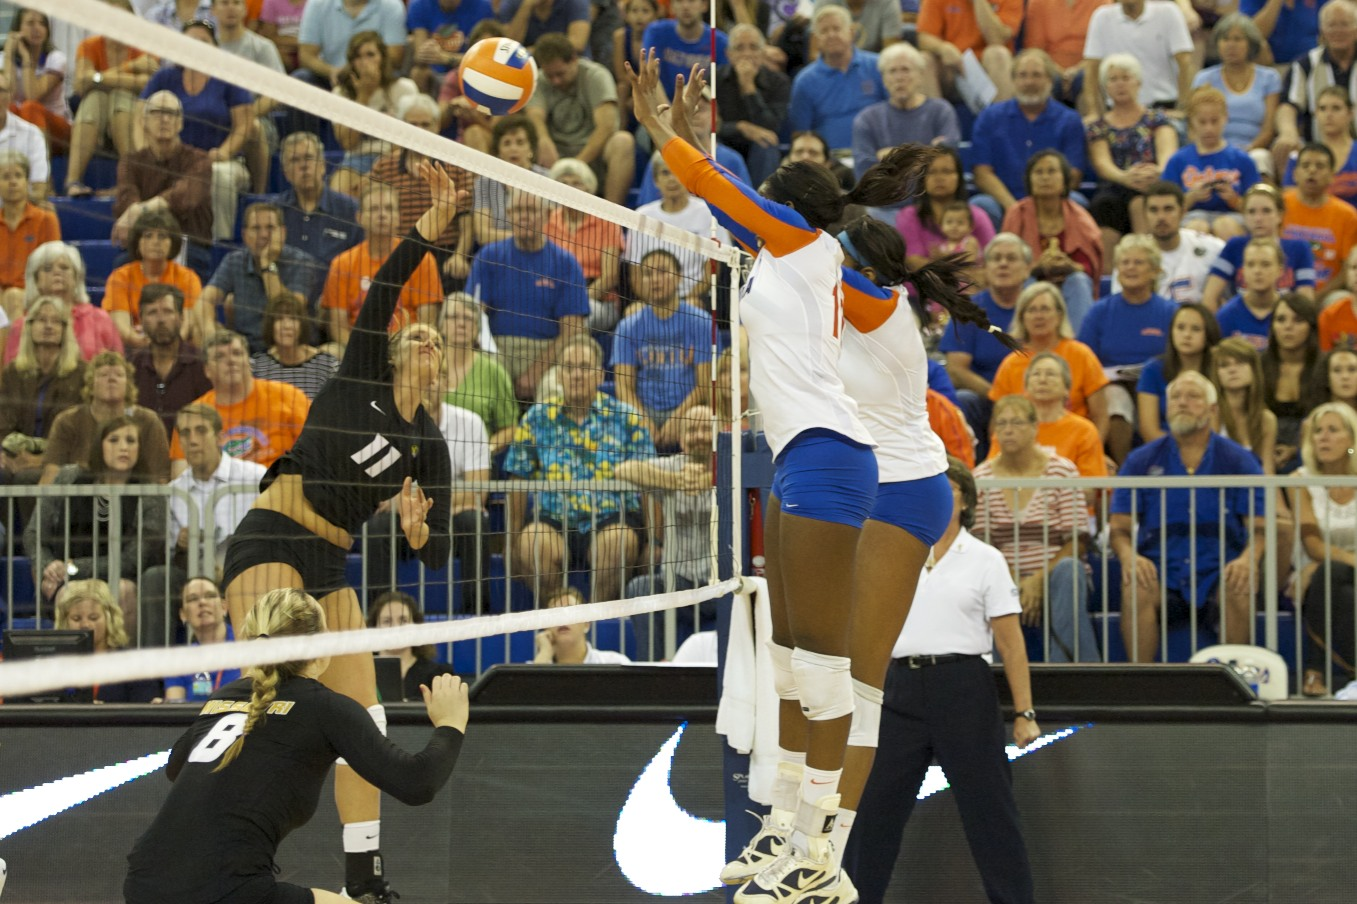 Chloe Mann and Tangerine Wiggs block Missouri hitter in the first set on Friday night.